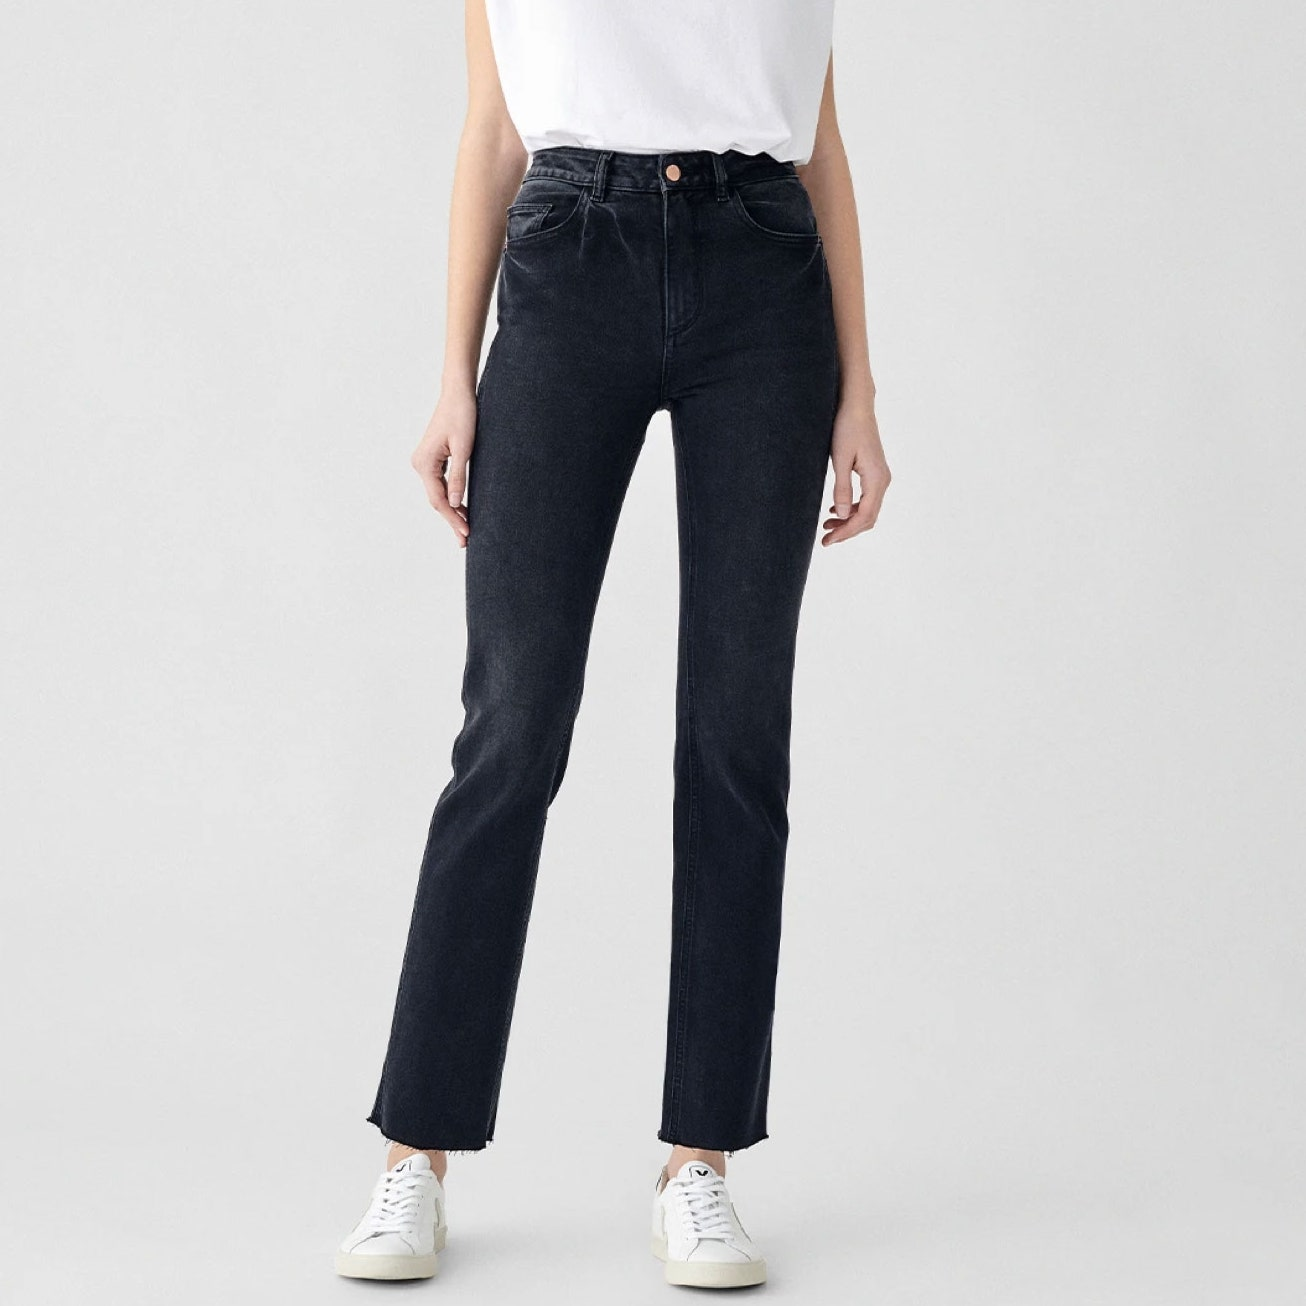 model wearing dark wash blue jeans and white t-shirt